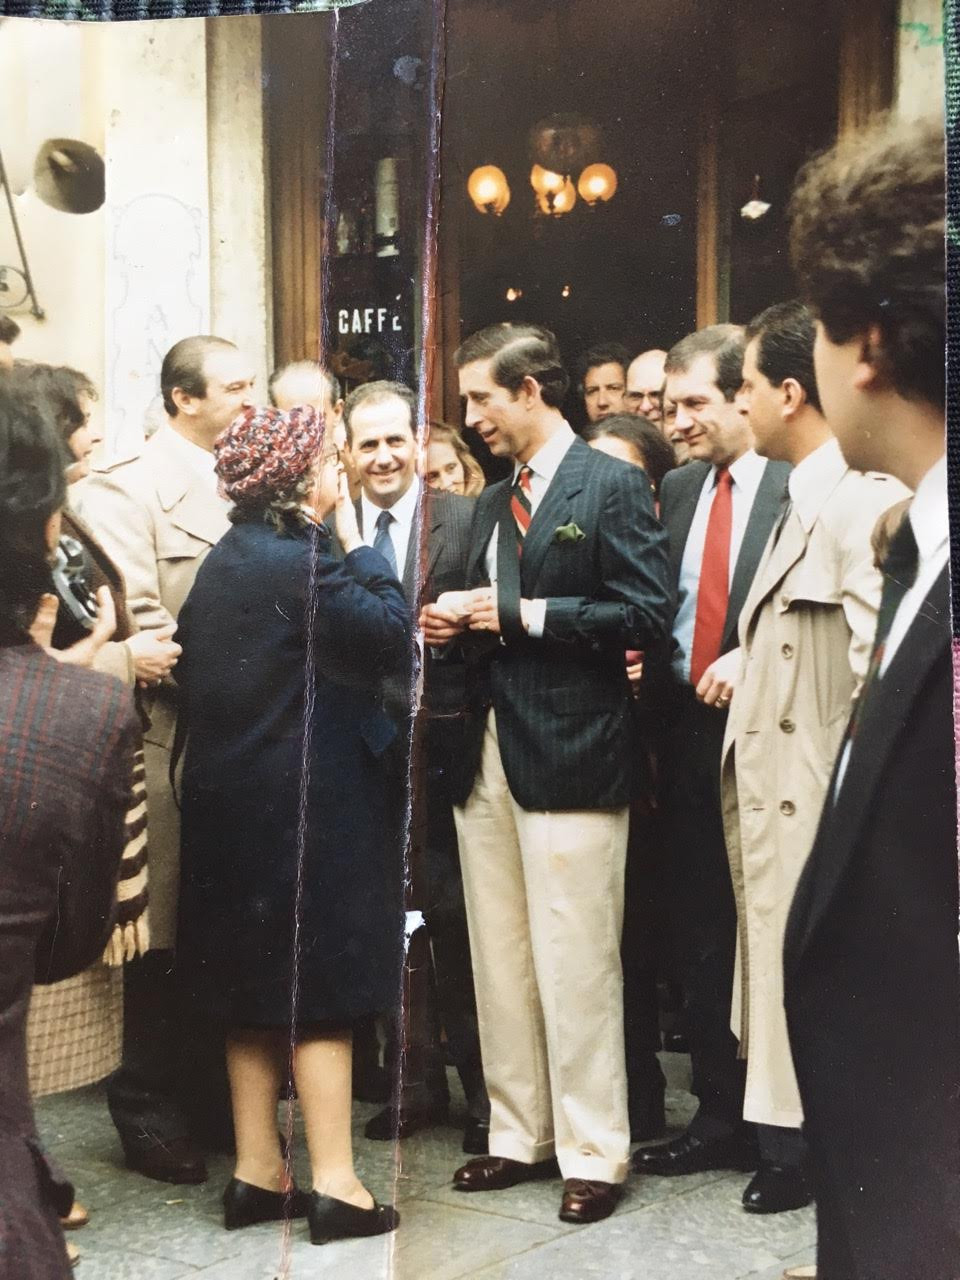 Prince Charles in Montalcino Italy